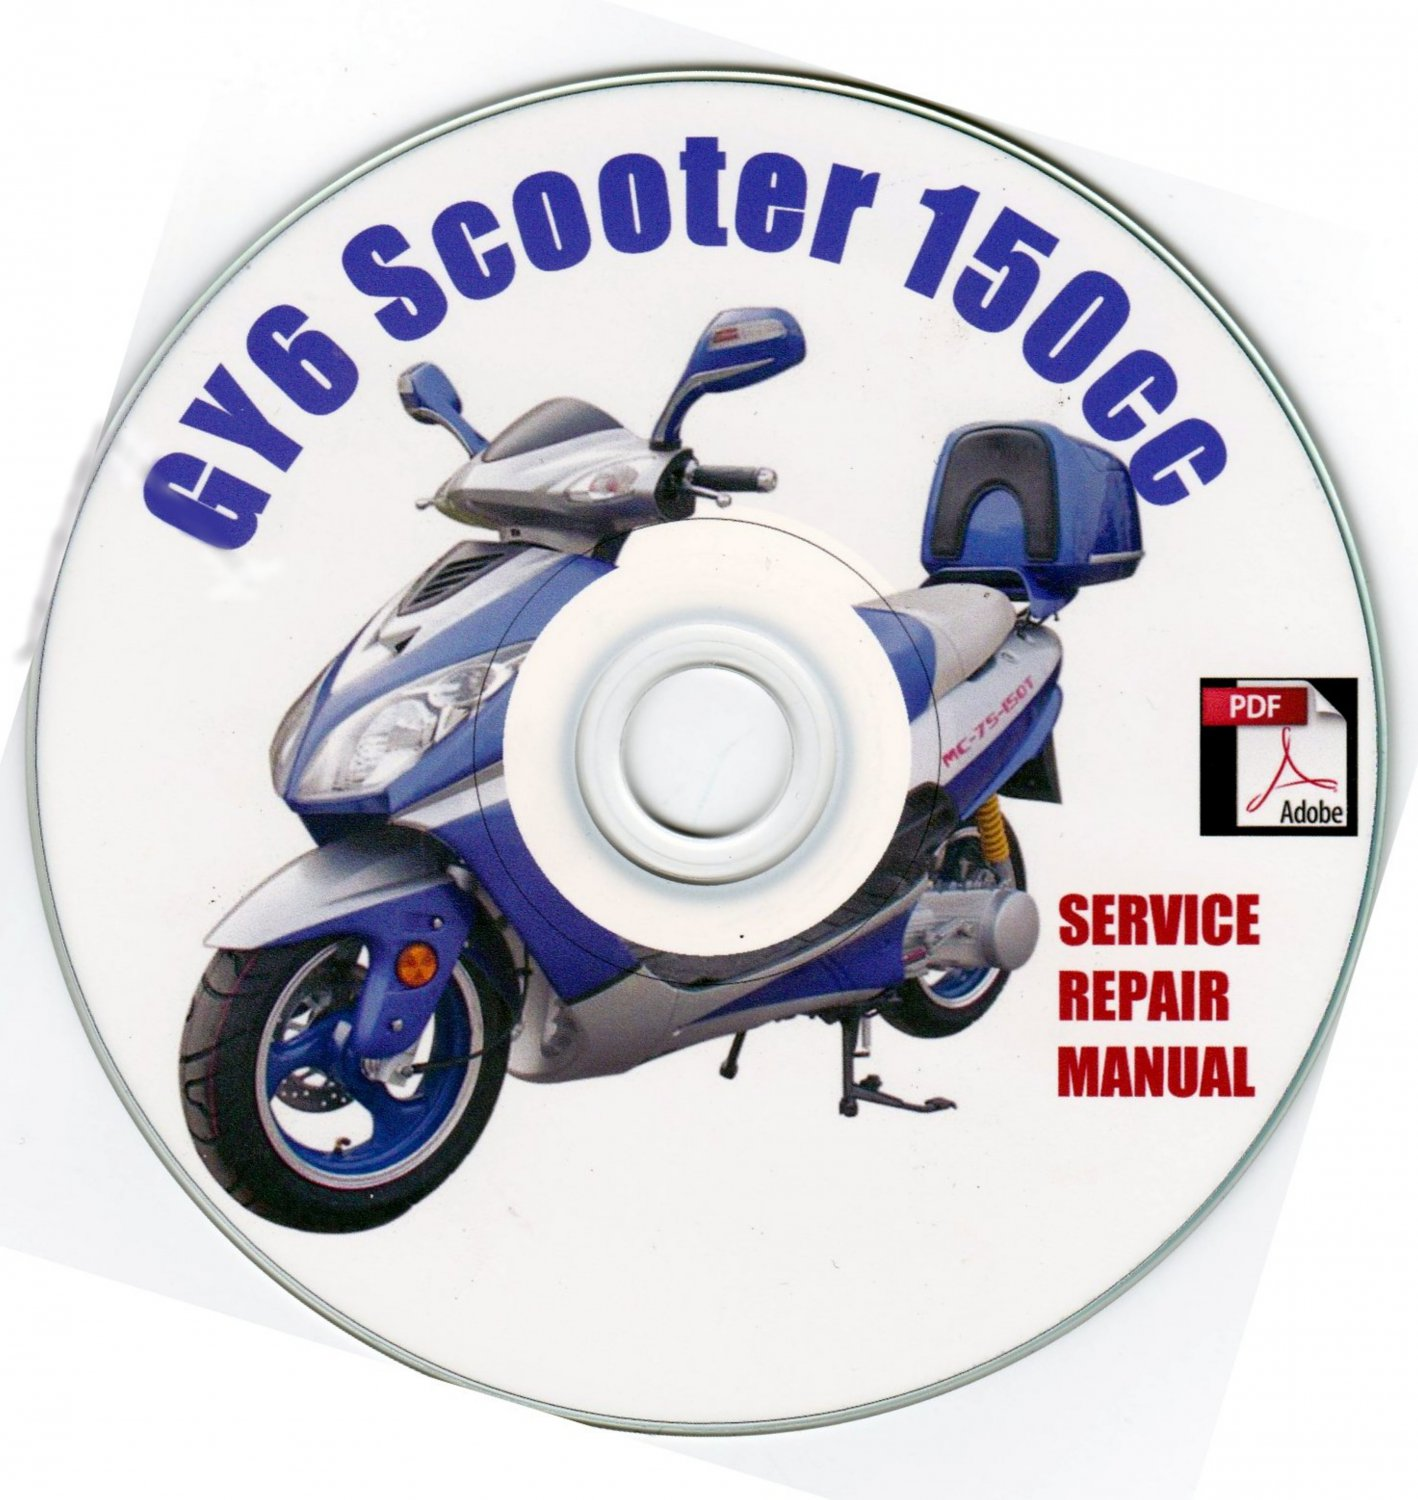 Scooter 150cc GY6 Service Repair Manual Peace Sports VIP Strada CF Moto